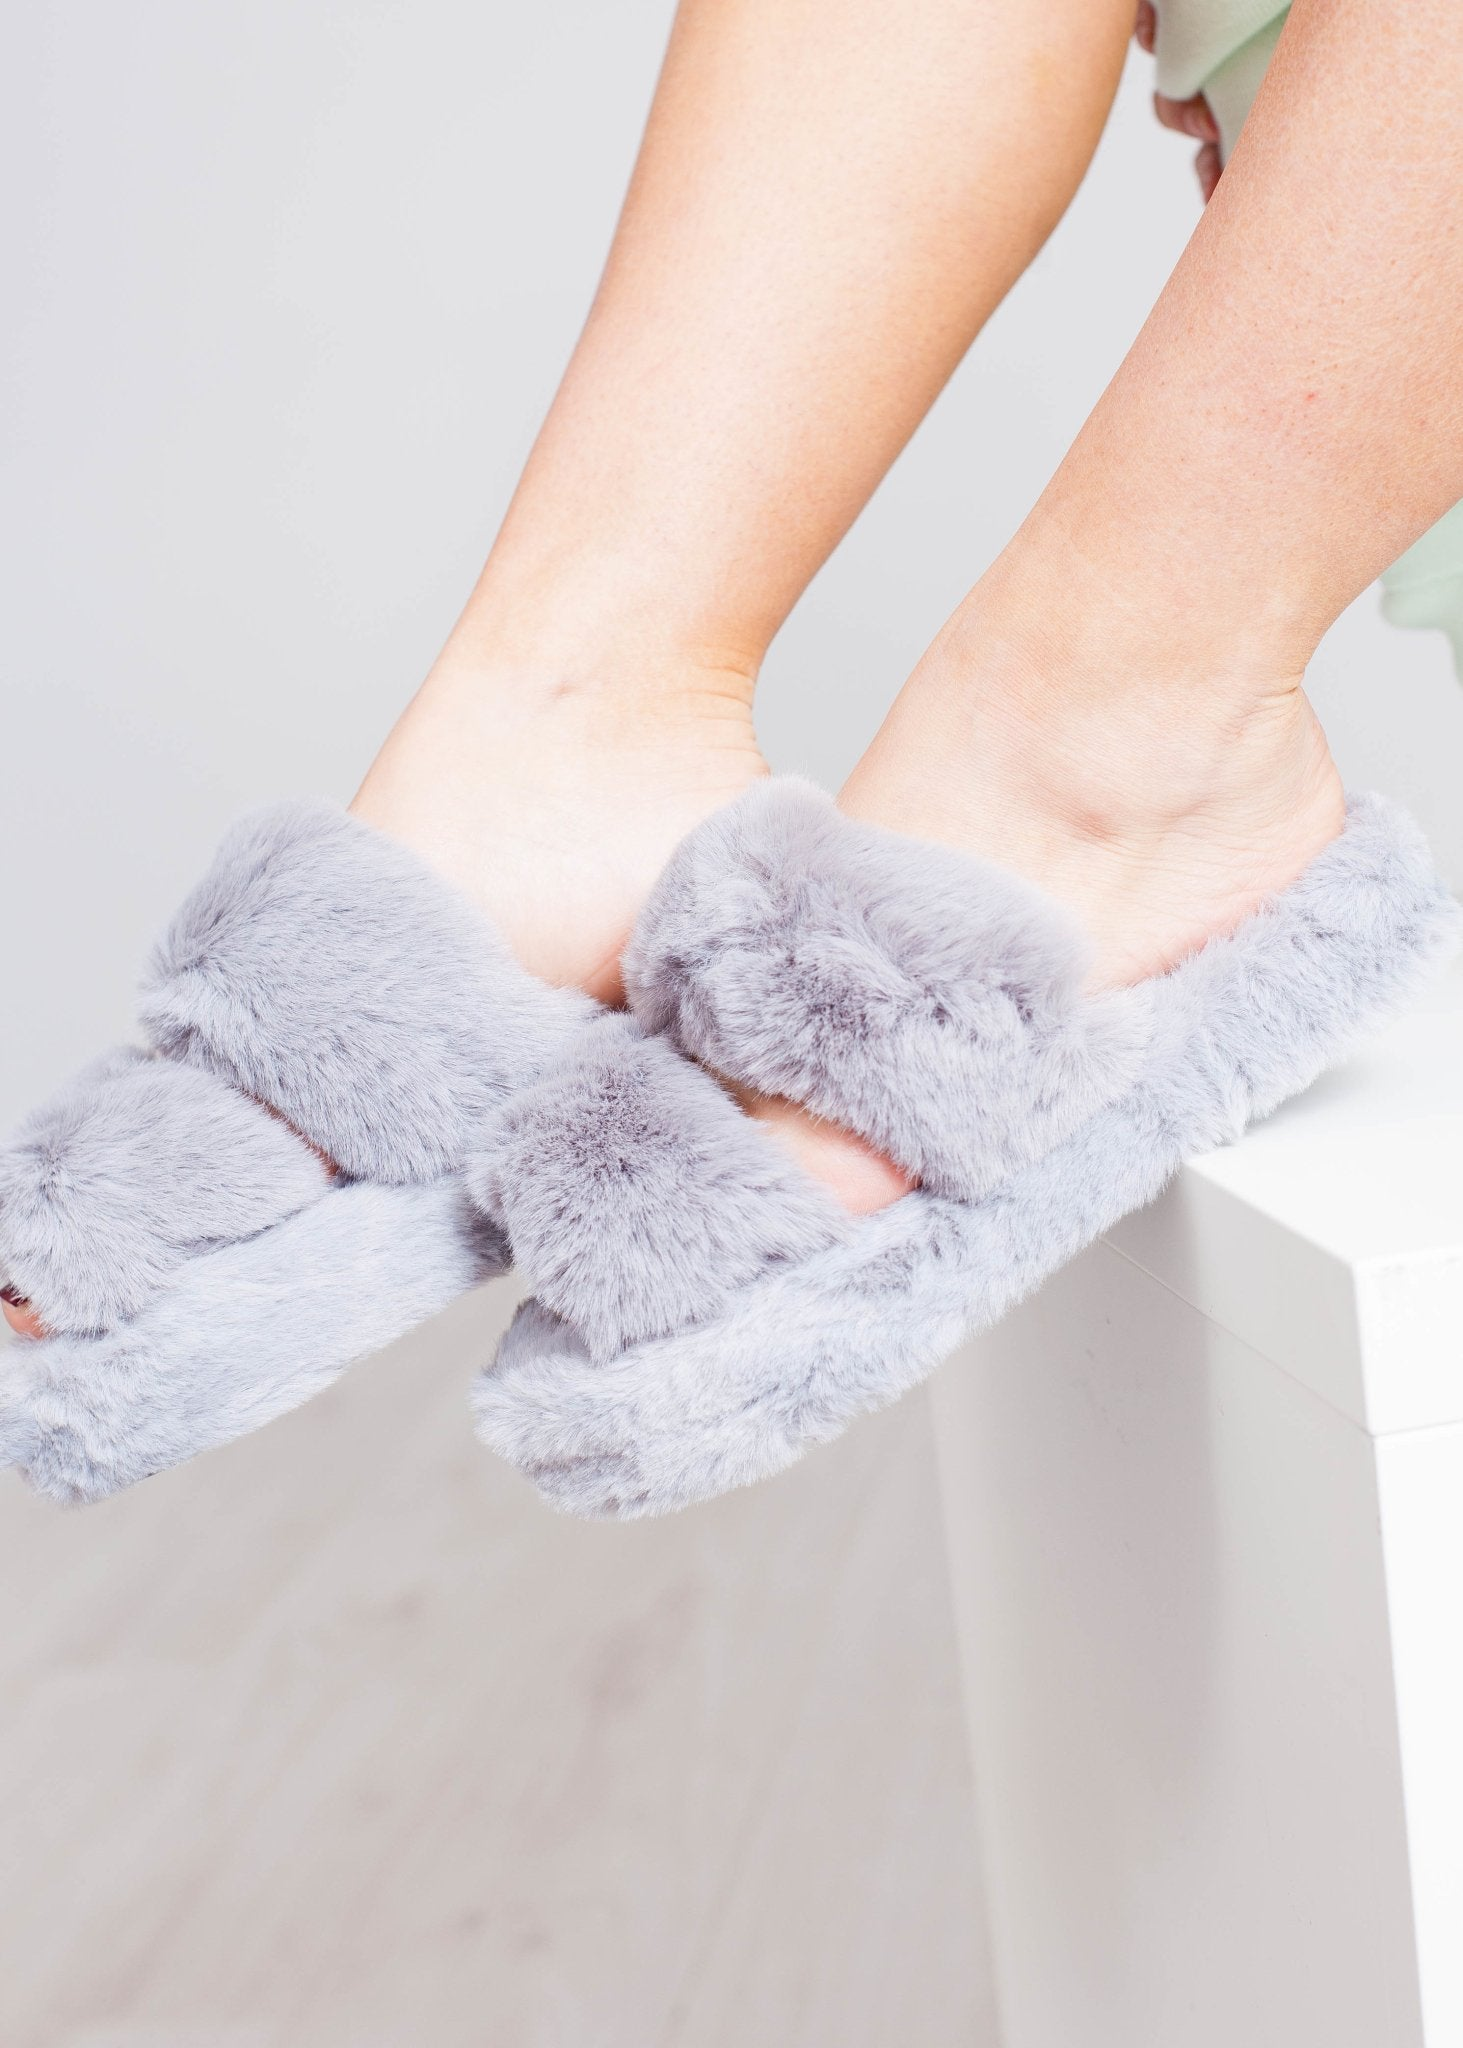 Cathy Fluffy Slippers In Grey - The Walk in Wardrobe